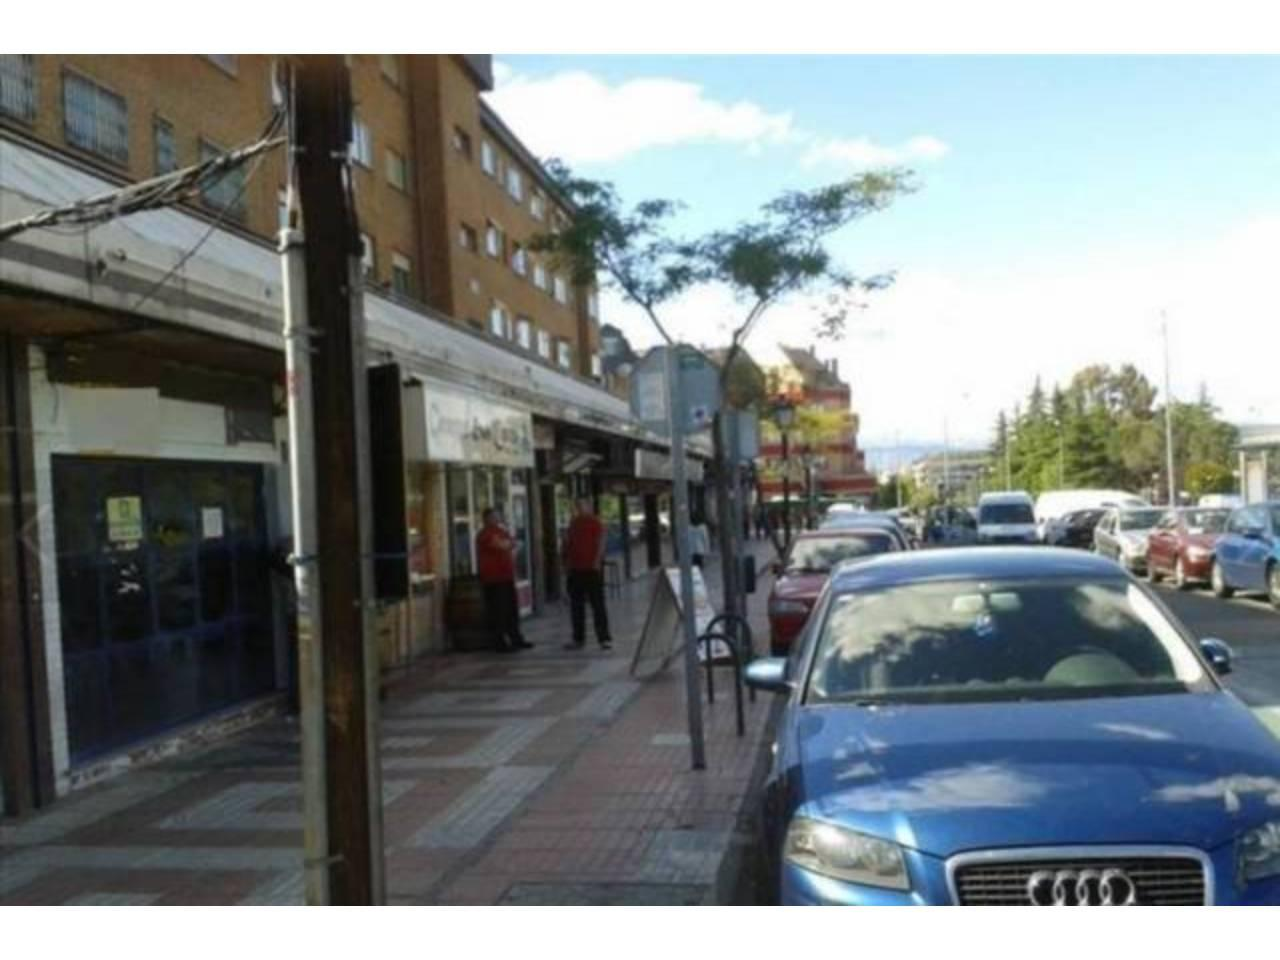 Local Comercial en  Majadahonda, Madrid Provincia